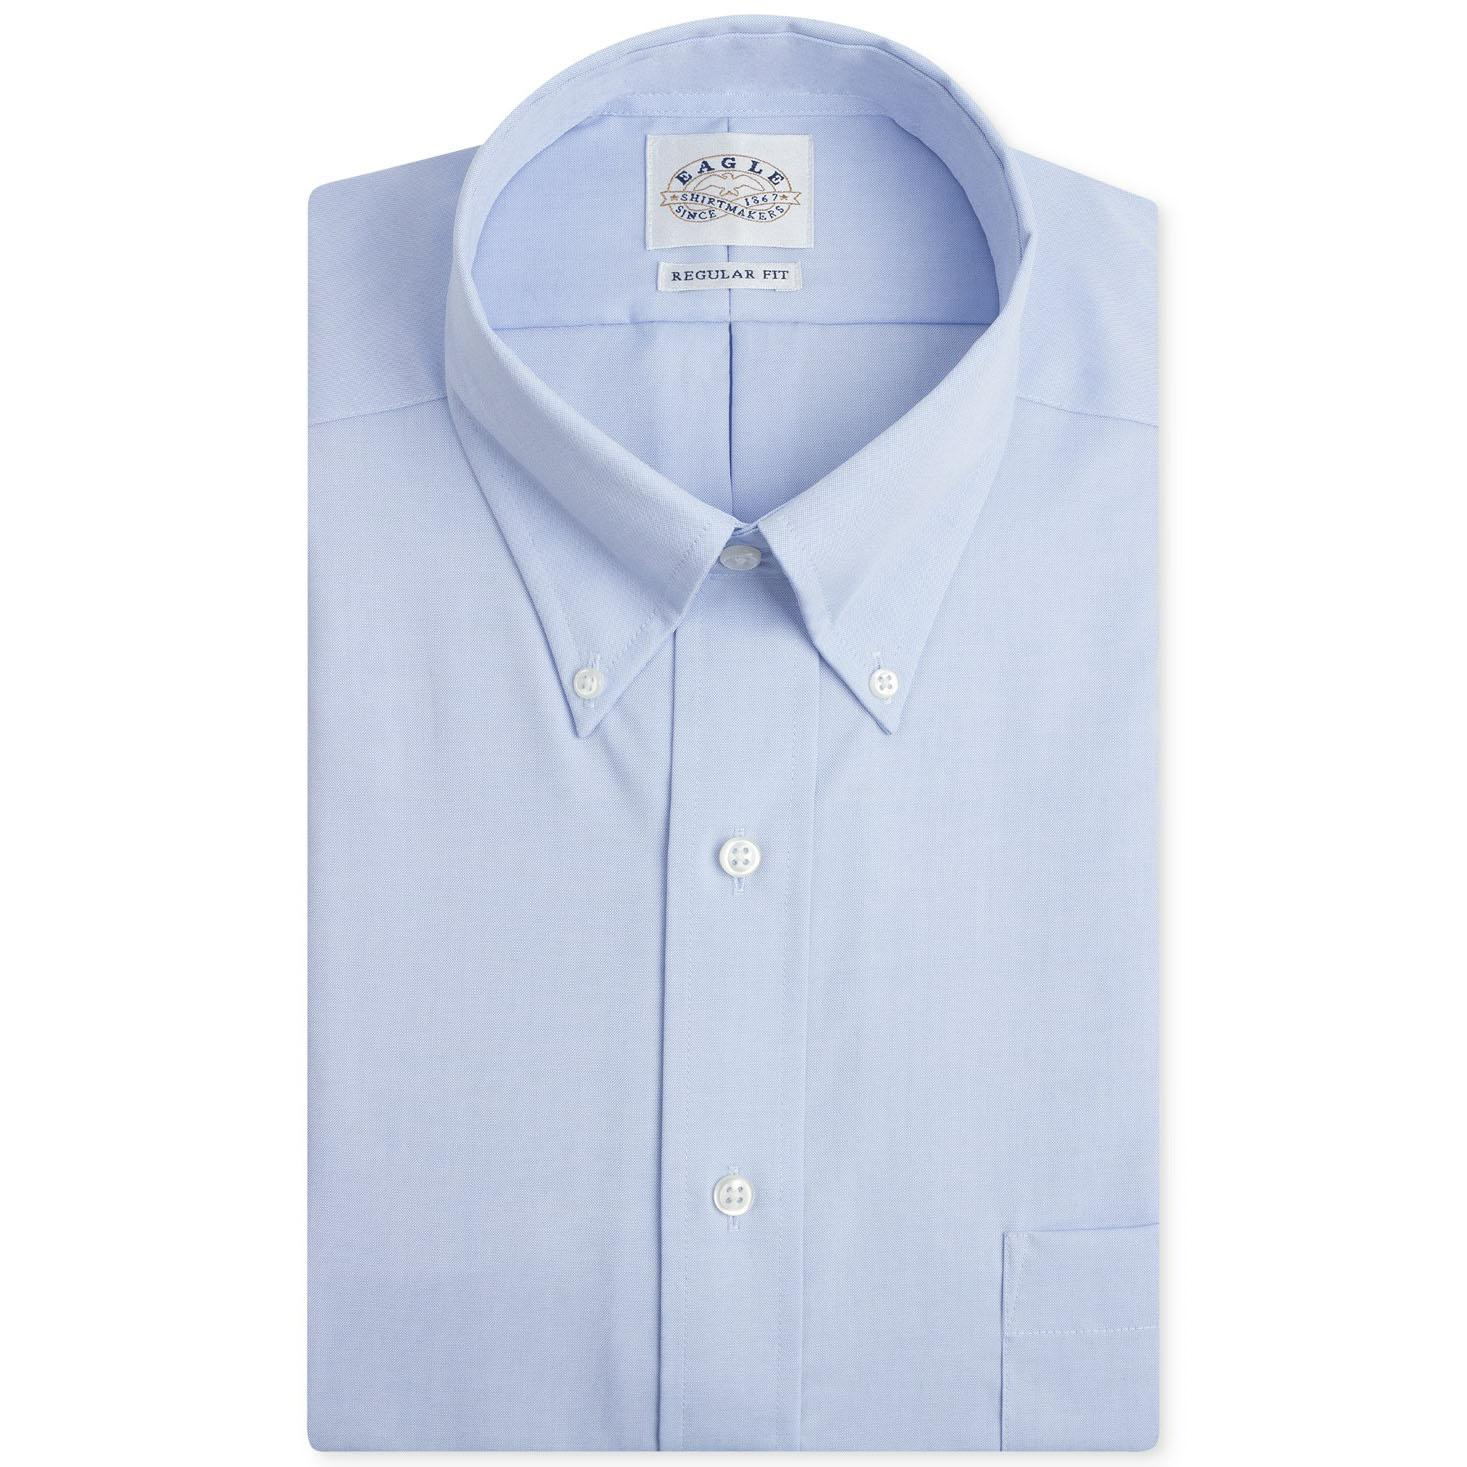 3 Kenneth Cole Reaction Mens Dress Shirts